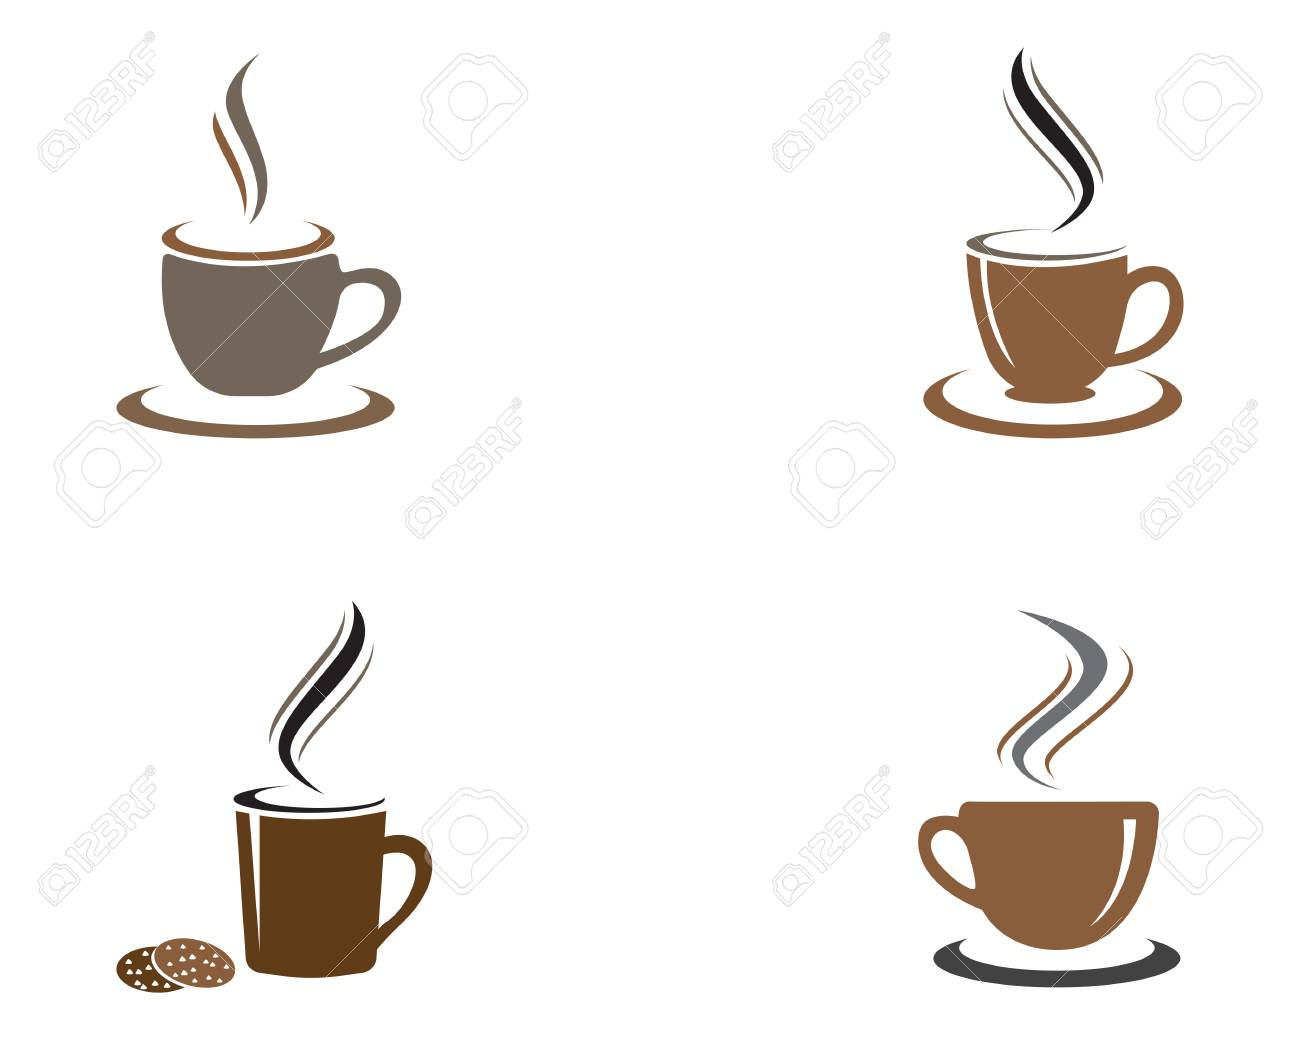 coffee cup template vector icon design royalty free cliparts